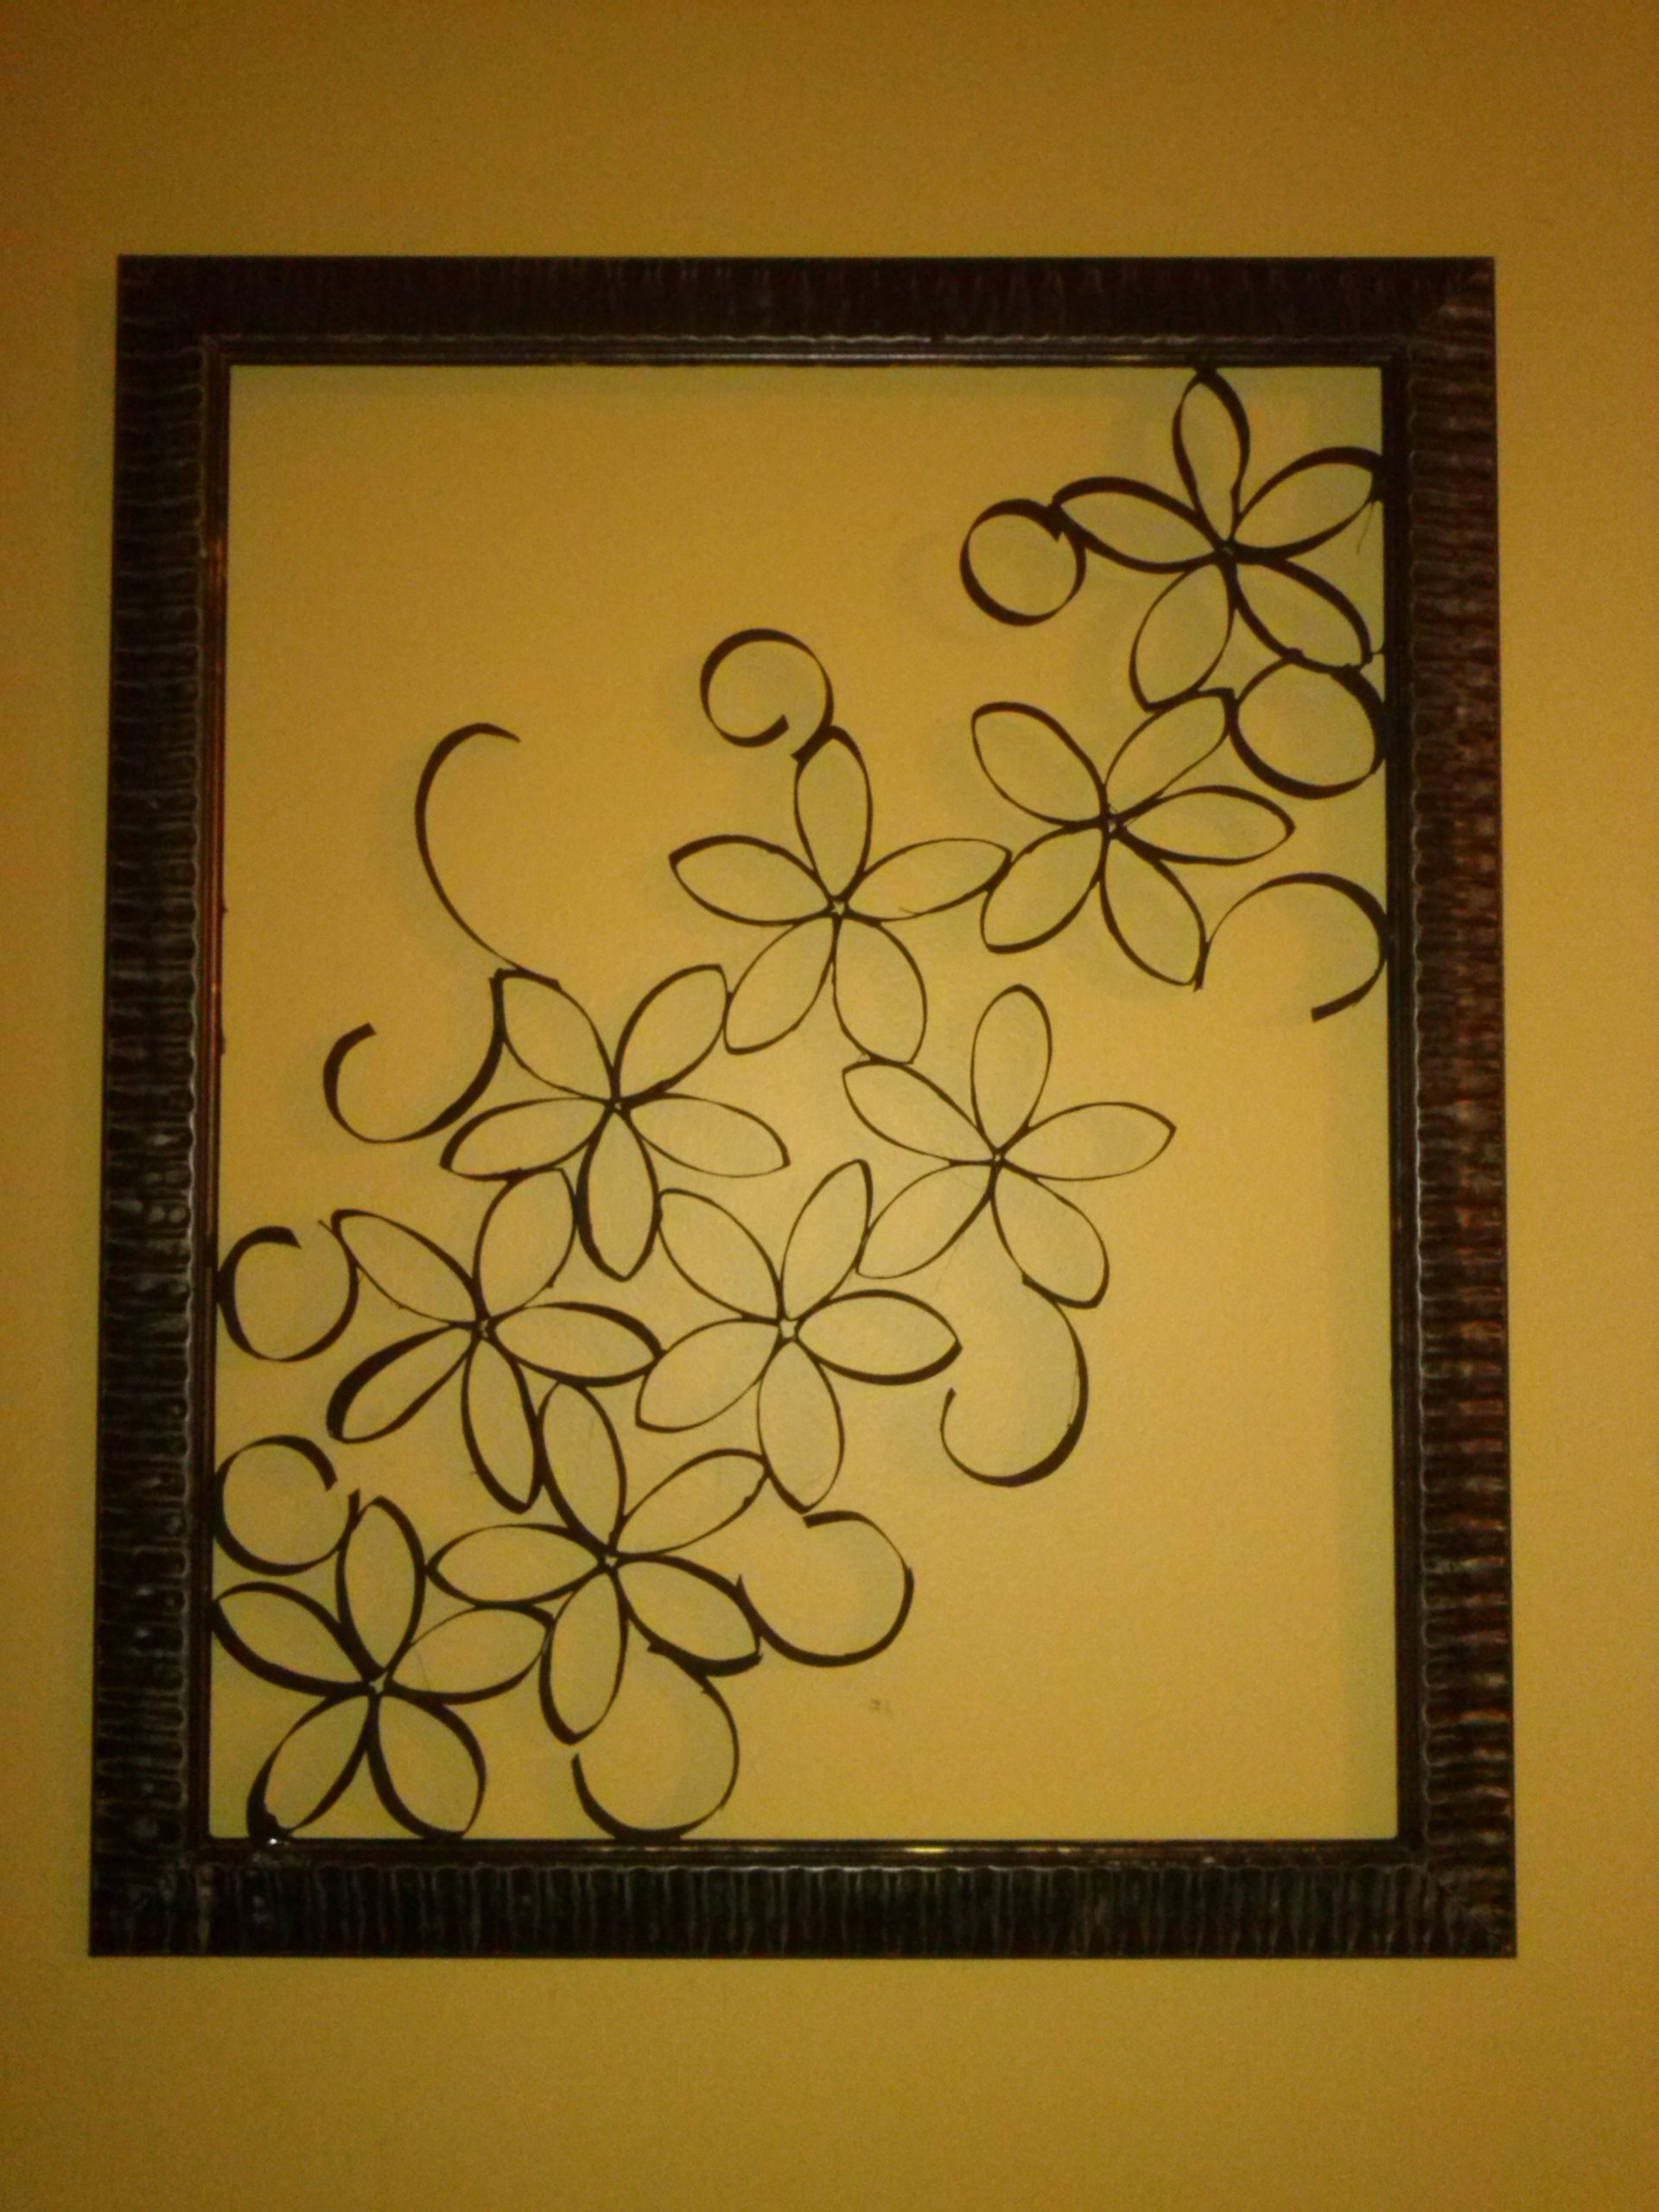 Diy Toilet Paper Roll Wall Art | Via Hand With Regard To Most Up To Date Toilet Paper Roll Wall Art (View 7 of 20)